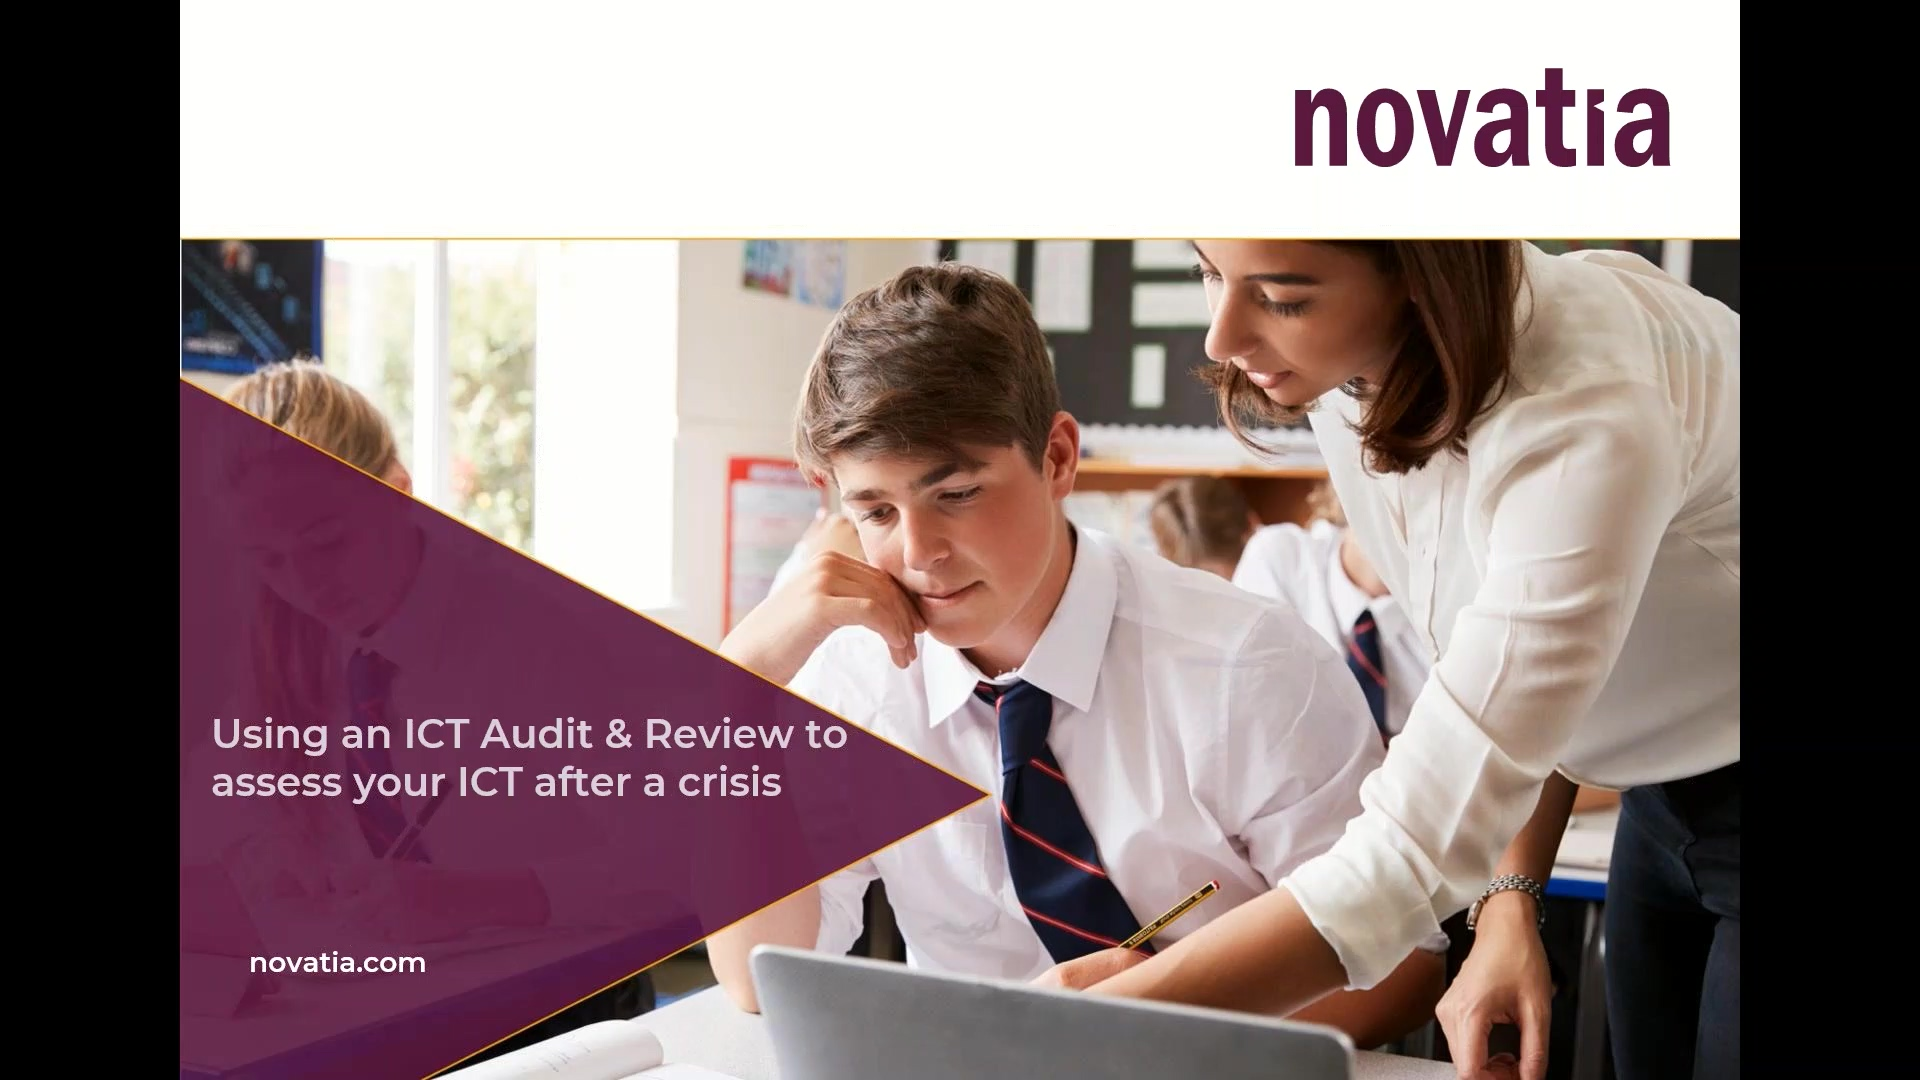 Using an ICT Audit & Review to Assess your ICT after a crisis